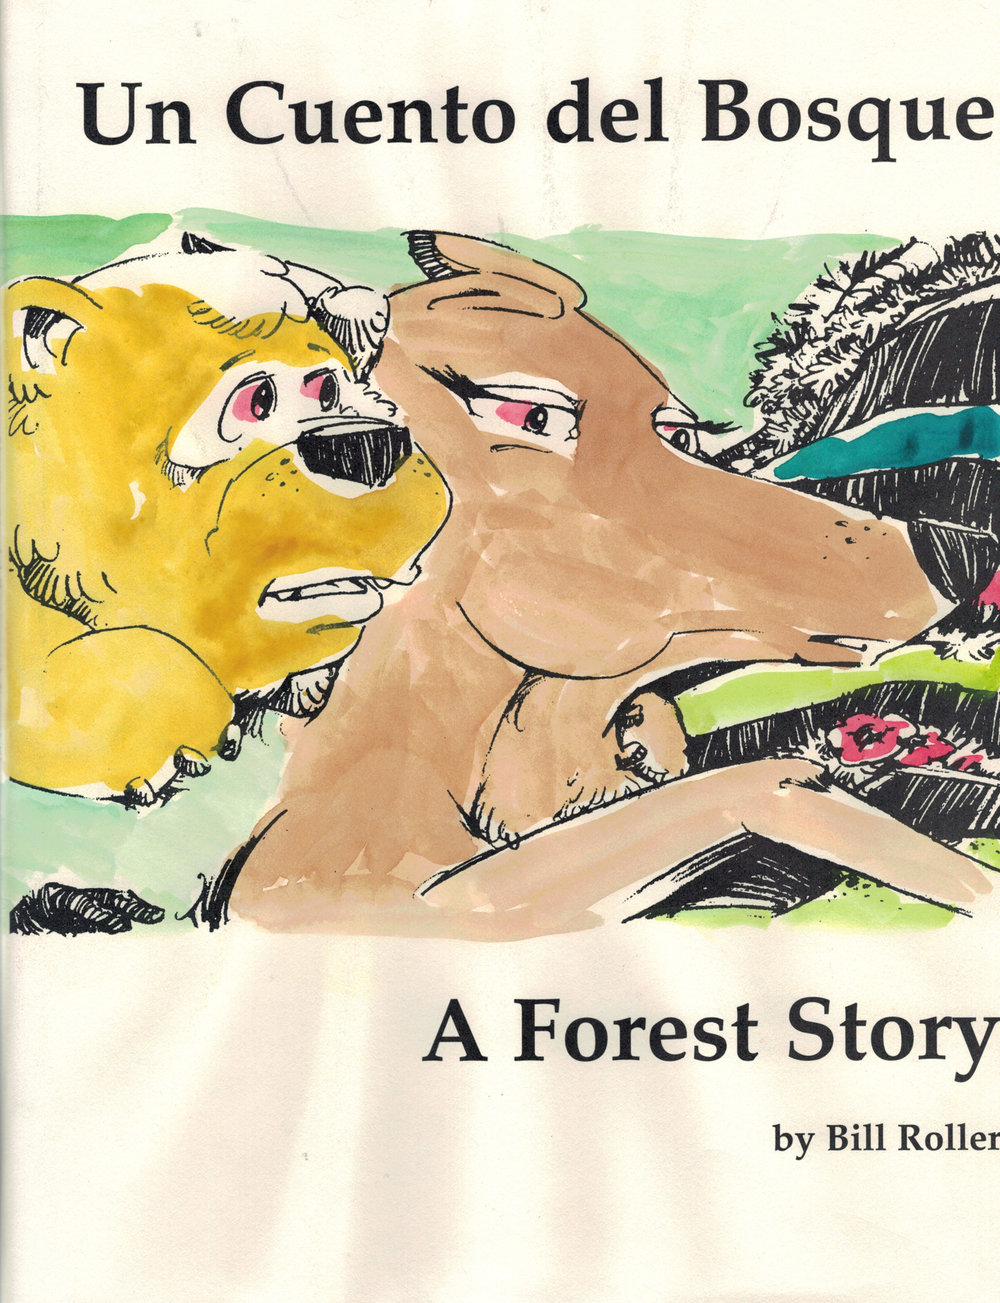 Un Cuento del Bosque: A Forest Story - A bilingual children's story with illustrationsBerkeley: Carpinchu Press, 1998